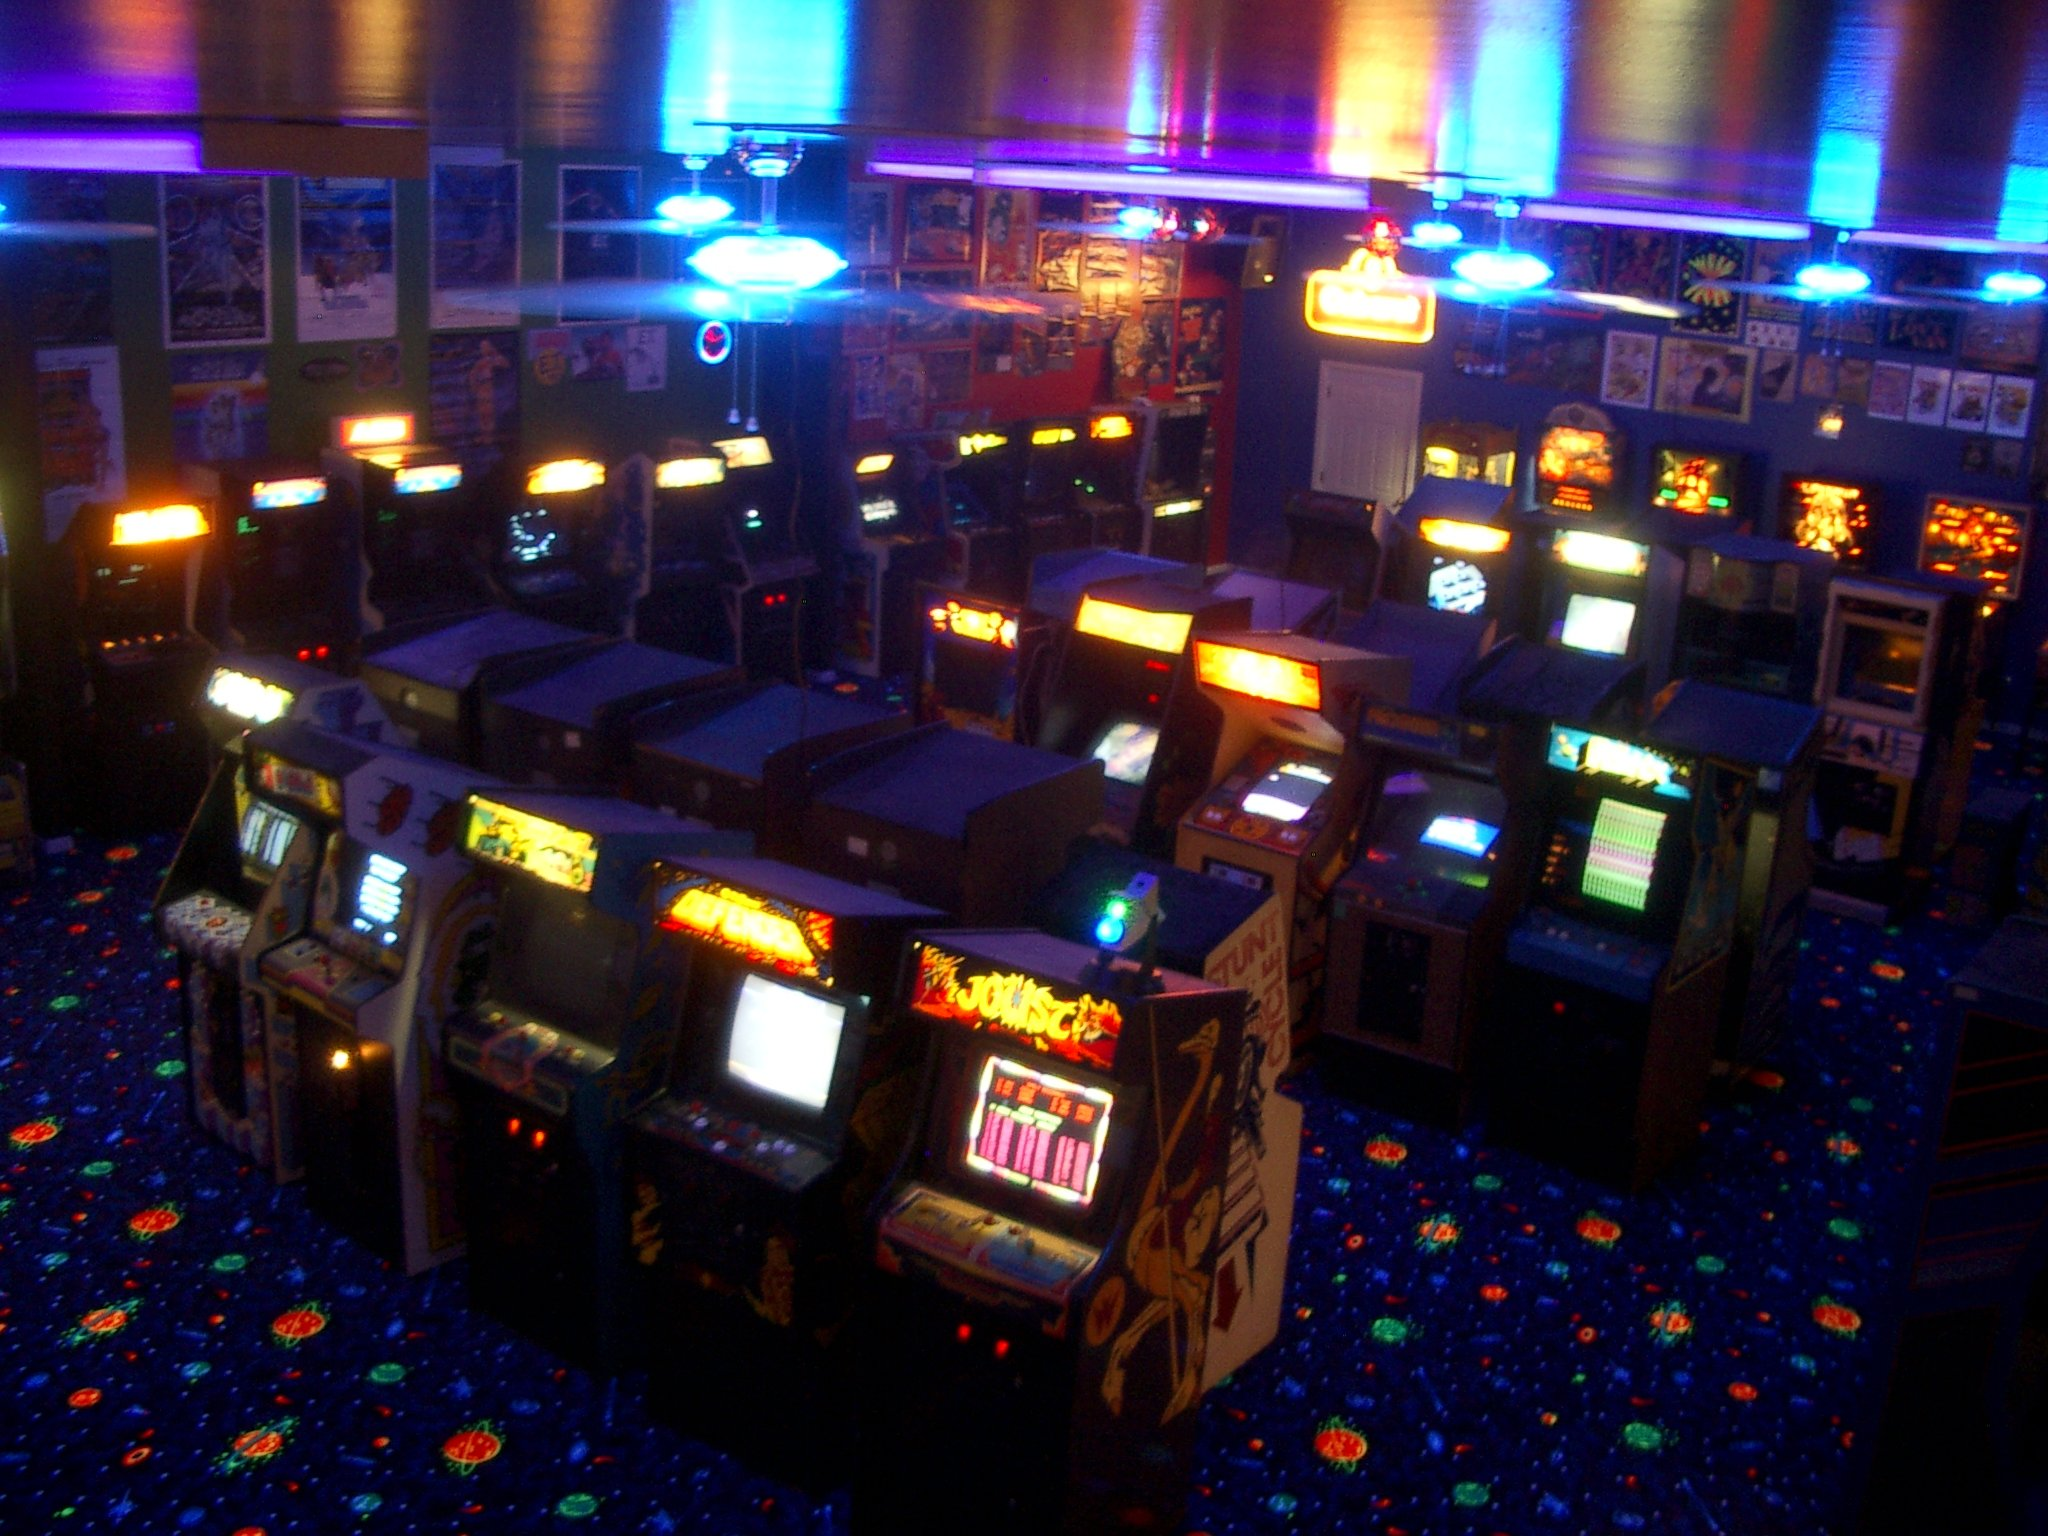 Luna City Arcade one of the home game rooms featured in the film 2048x1536